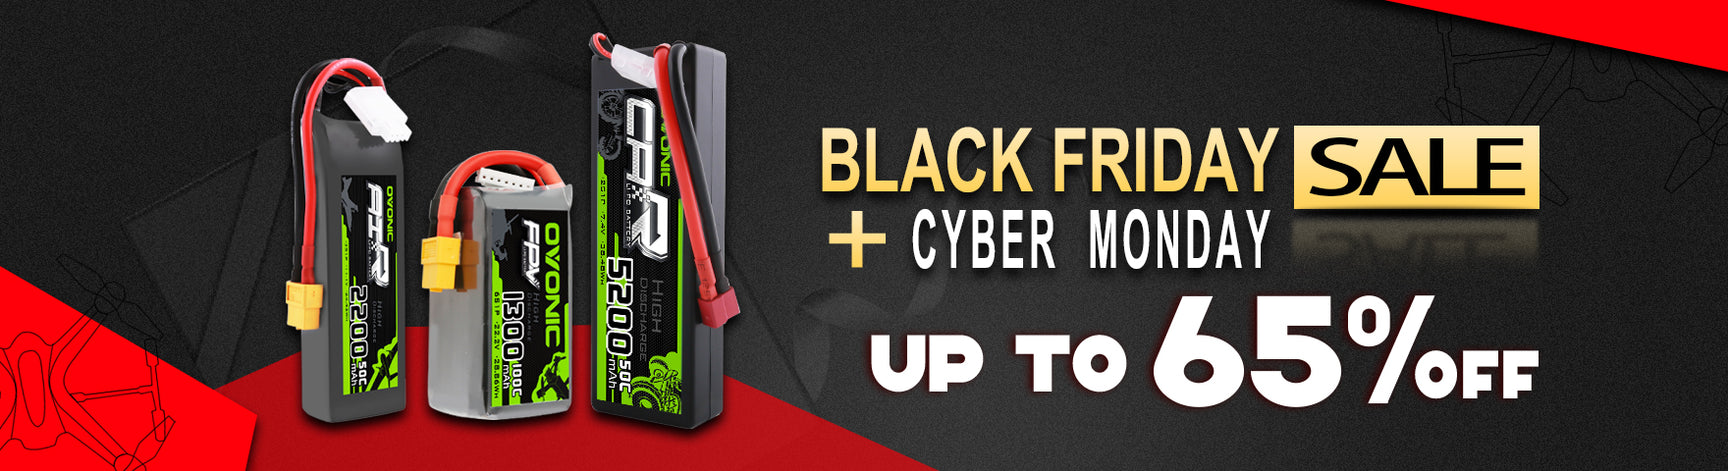 Ovonic Black Friday & Cyber Monday Sales